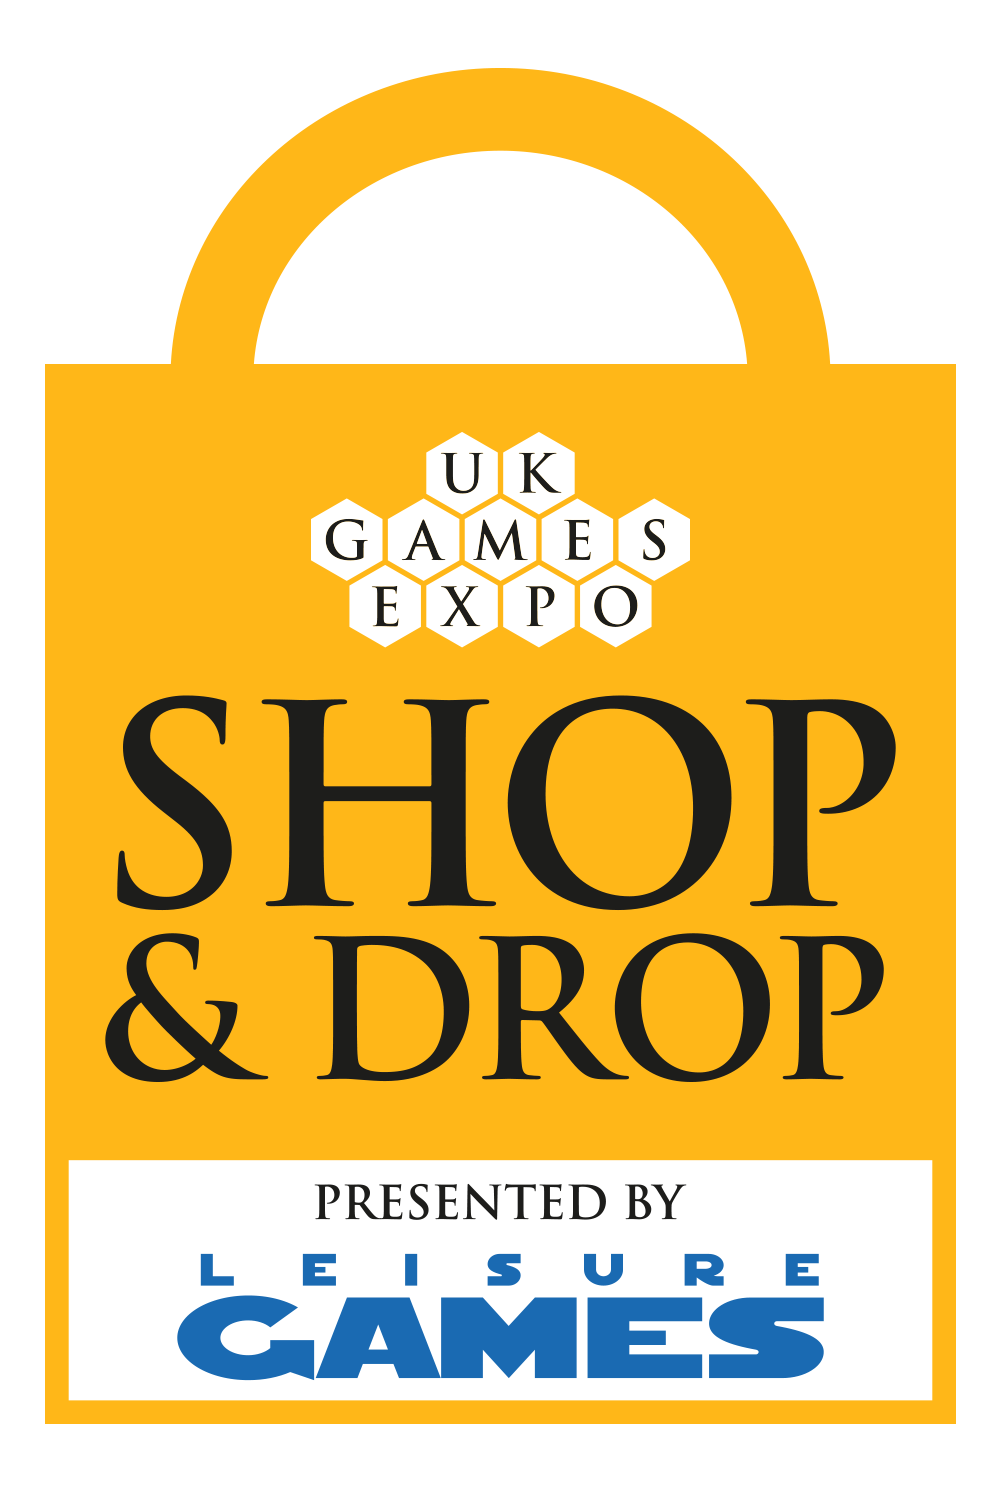 Shop and Drop Logo